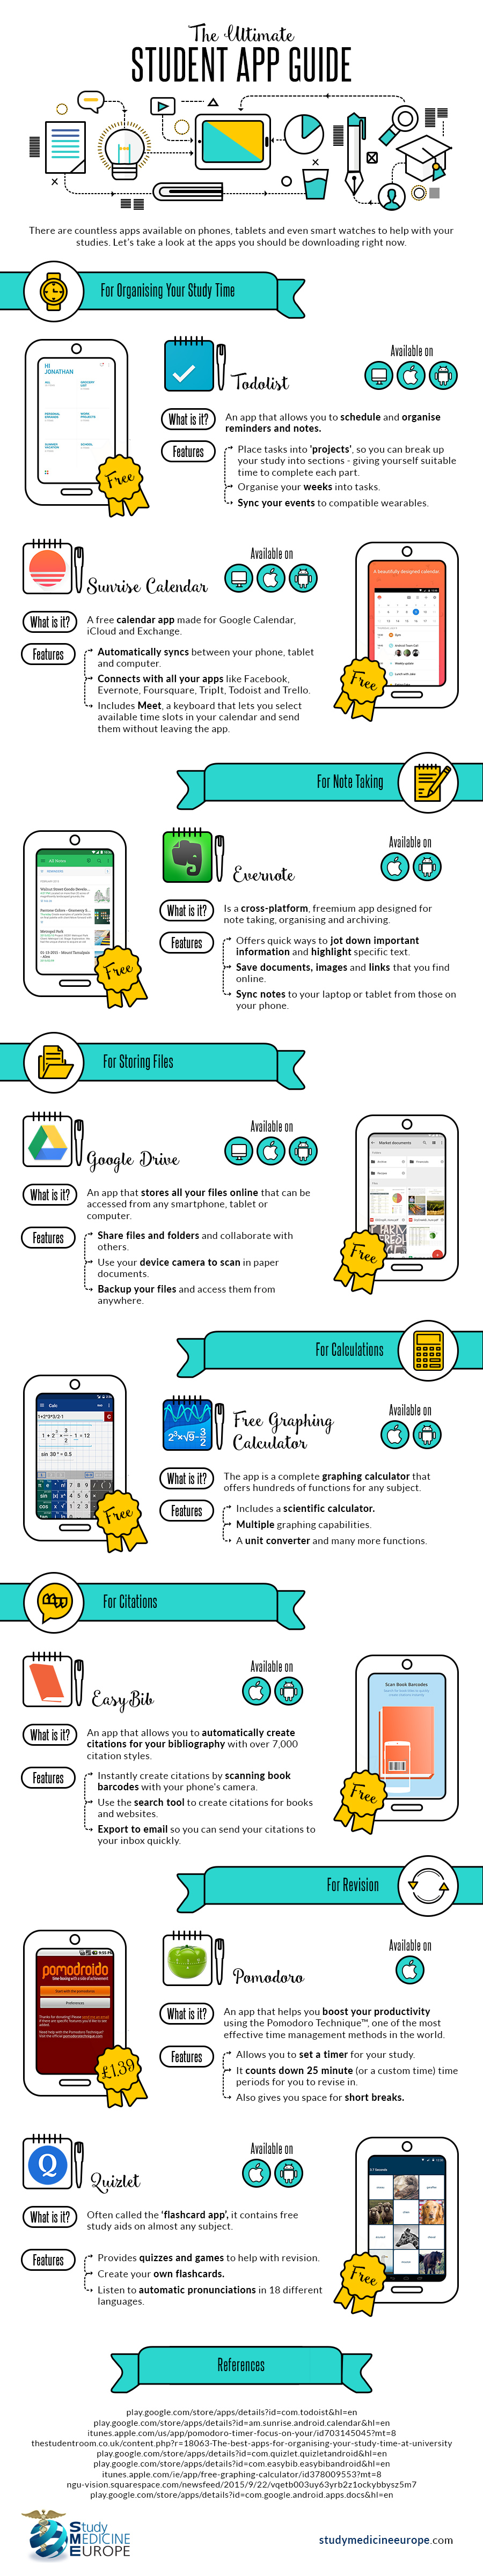 The-Ultimate-Student-App-Guide